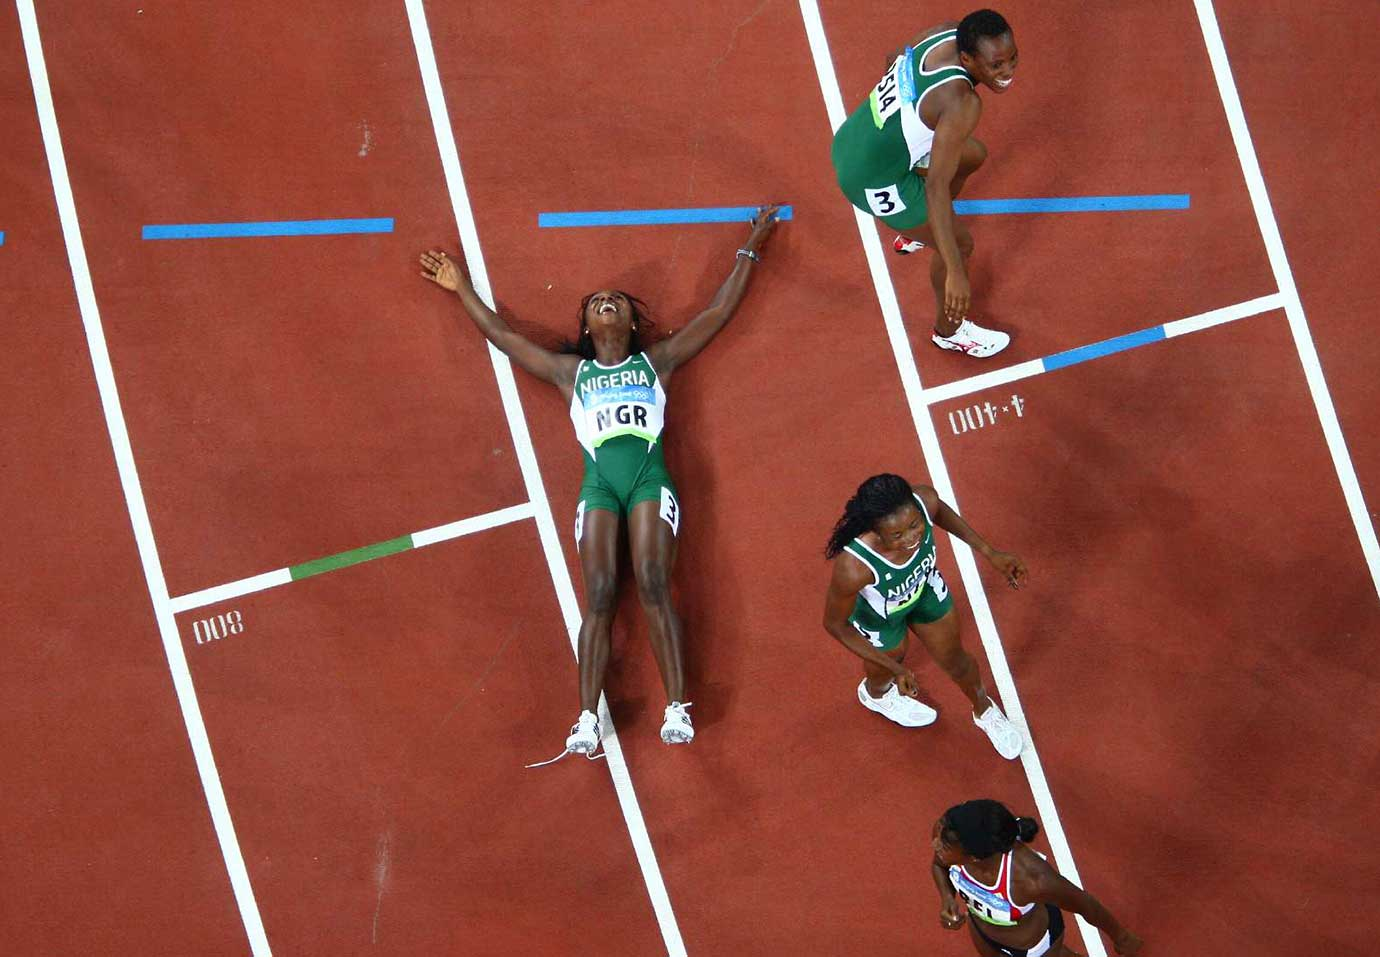 Nigeria's 4x100 meter relay team rejoices after winning the bronze medal at the 2008 Olympic Games in Beijing.